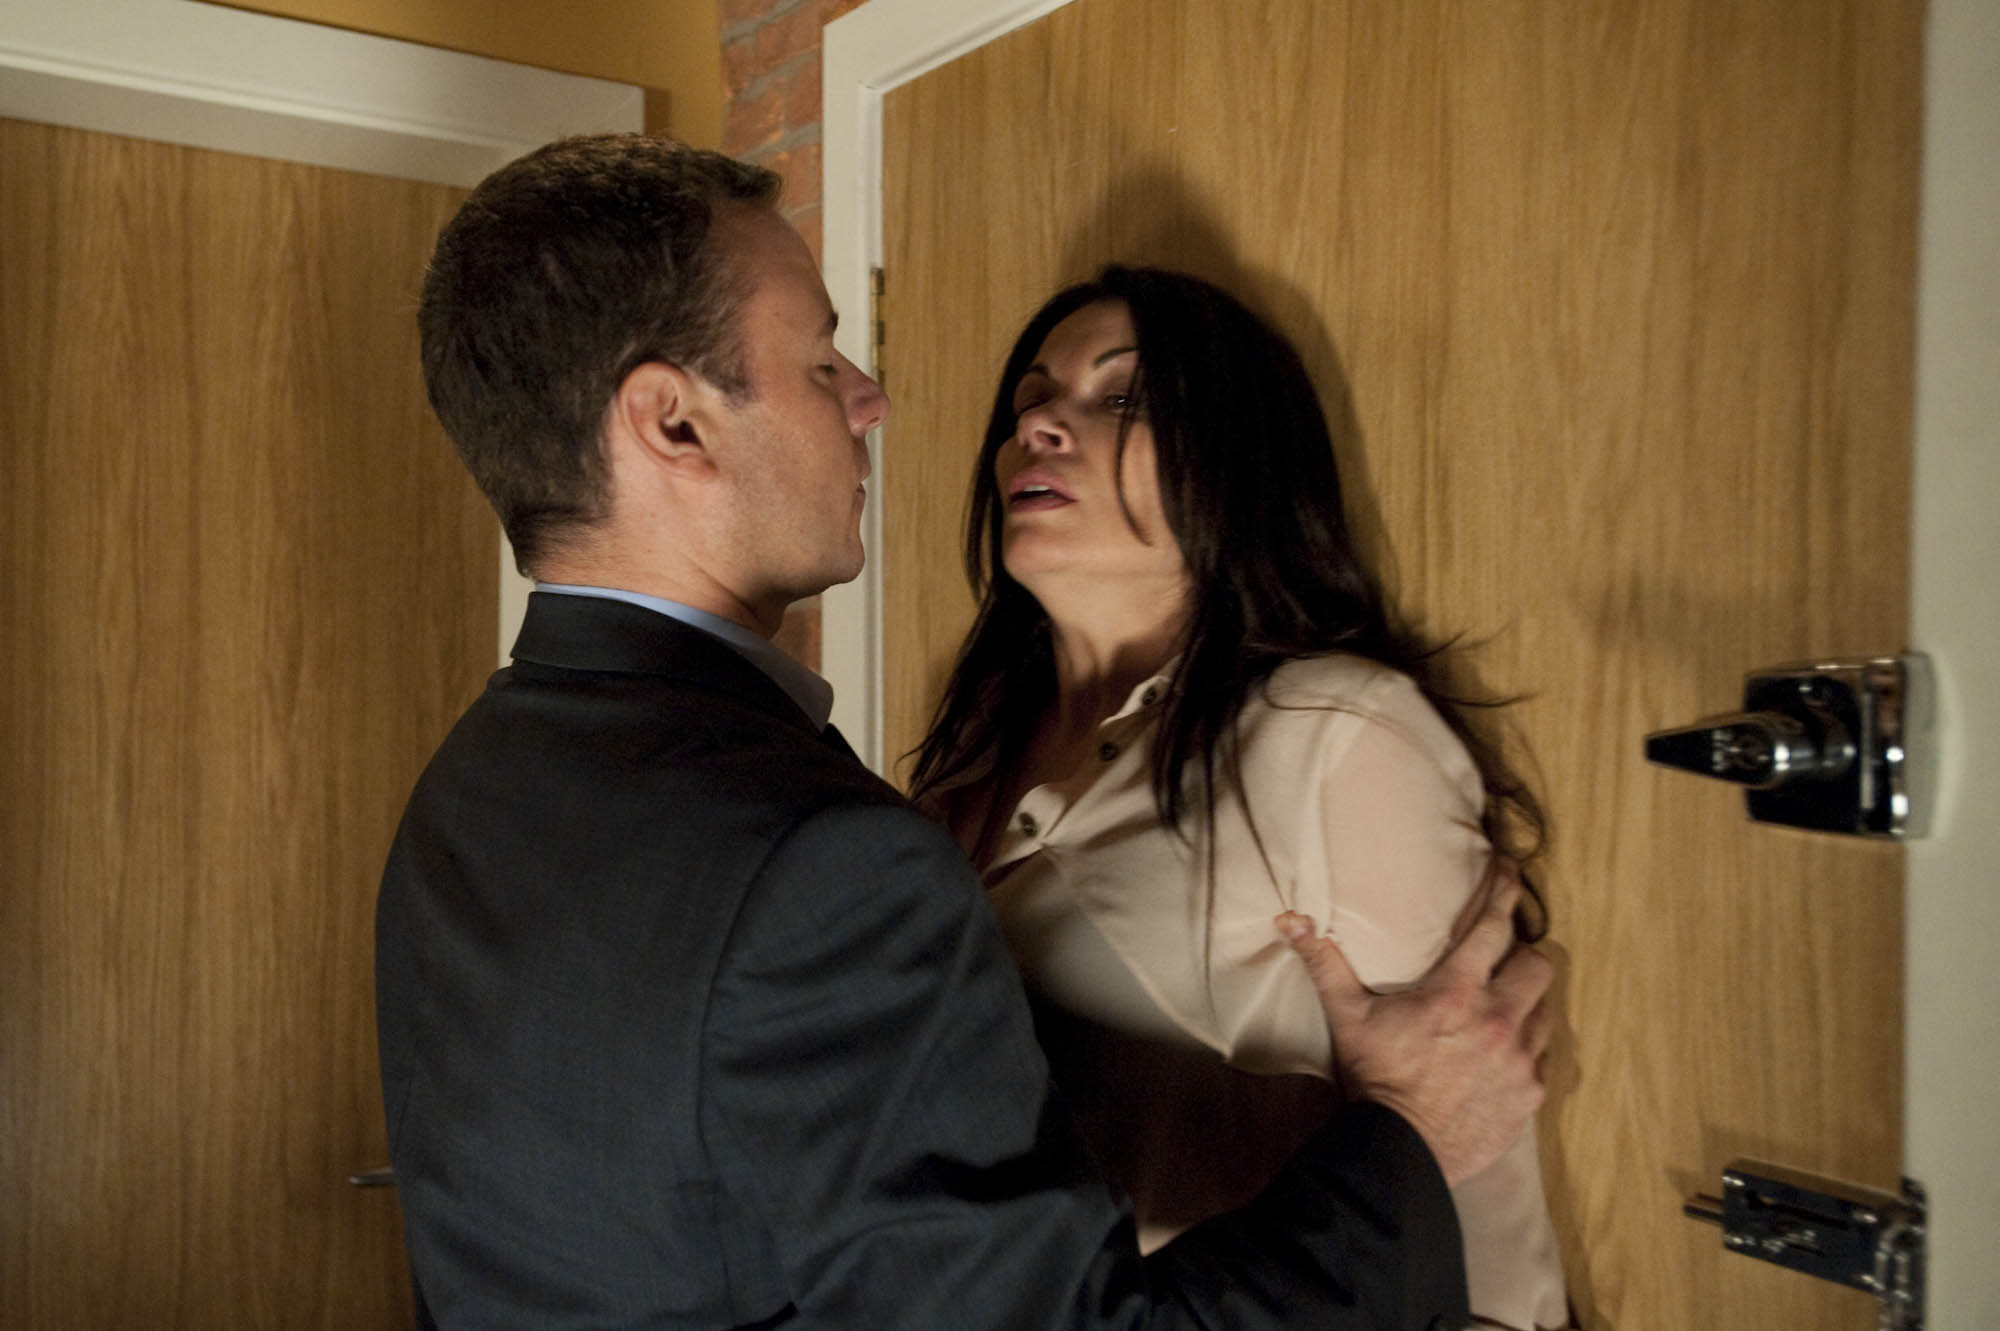 ditorial use only Mandatory Credit: Photo by ITV/REX/Shutterstock (1686313hs) Frank Foster [Andrew Lancel] is waiting for Carla Connor [Alison King] at the flat, having worked out why she's been seeing her solicitor. His suspicions and his blood boiling Frank refuses to walk away. Needing to get through to him Carla admits her feelings for Peter. Losing it Frank grabs her 'Coronation Street' TV Programme. - 2011